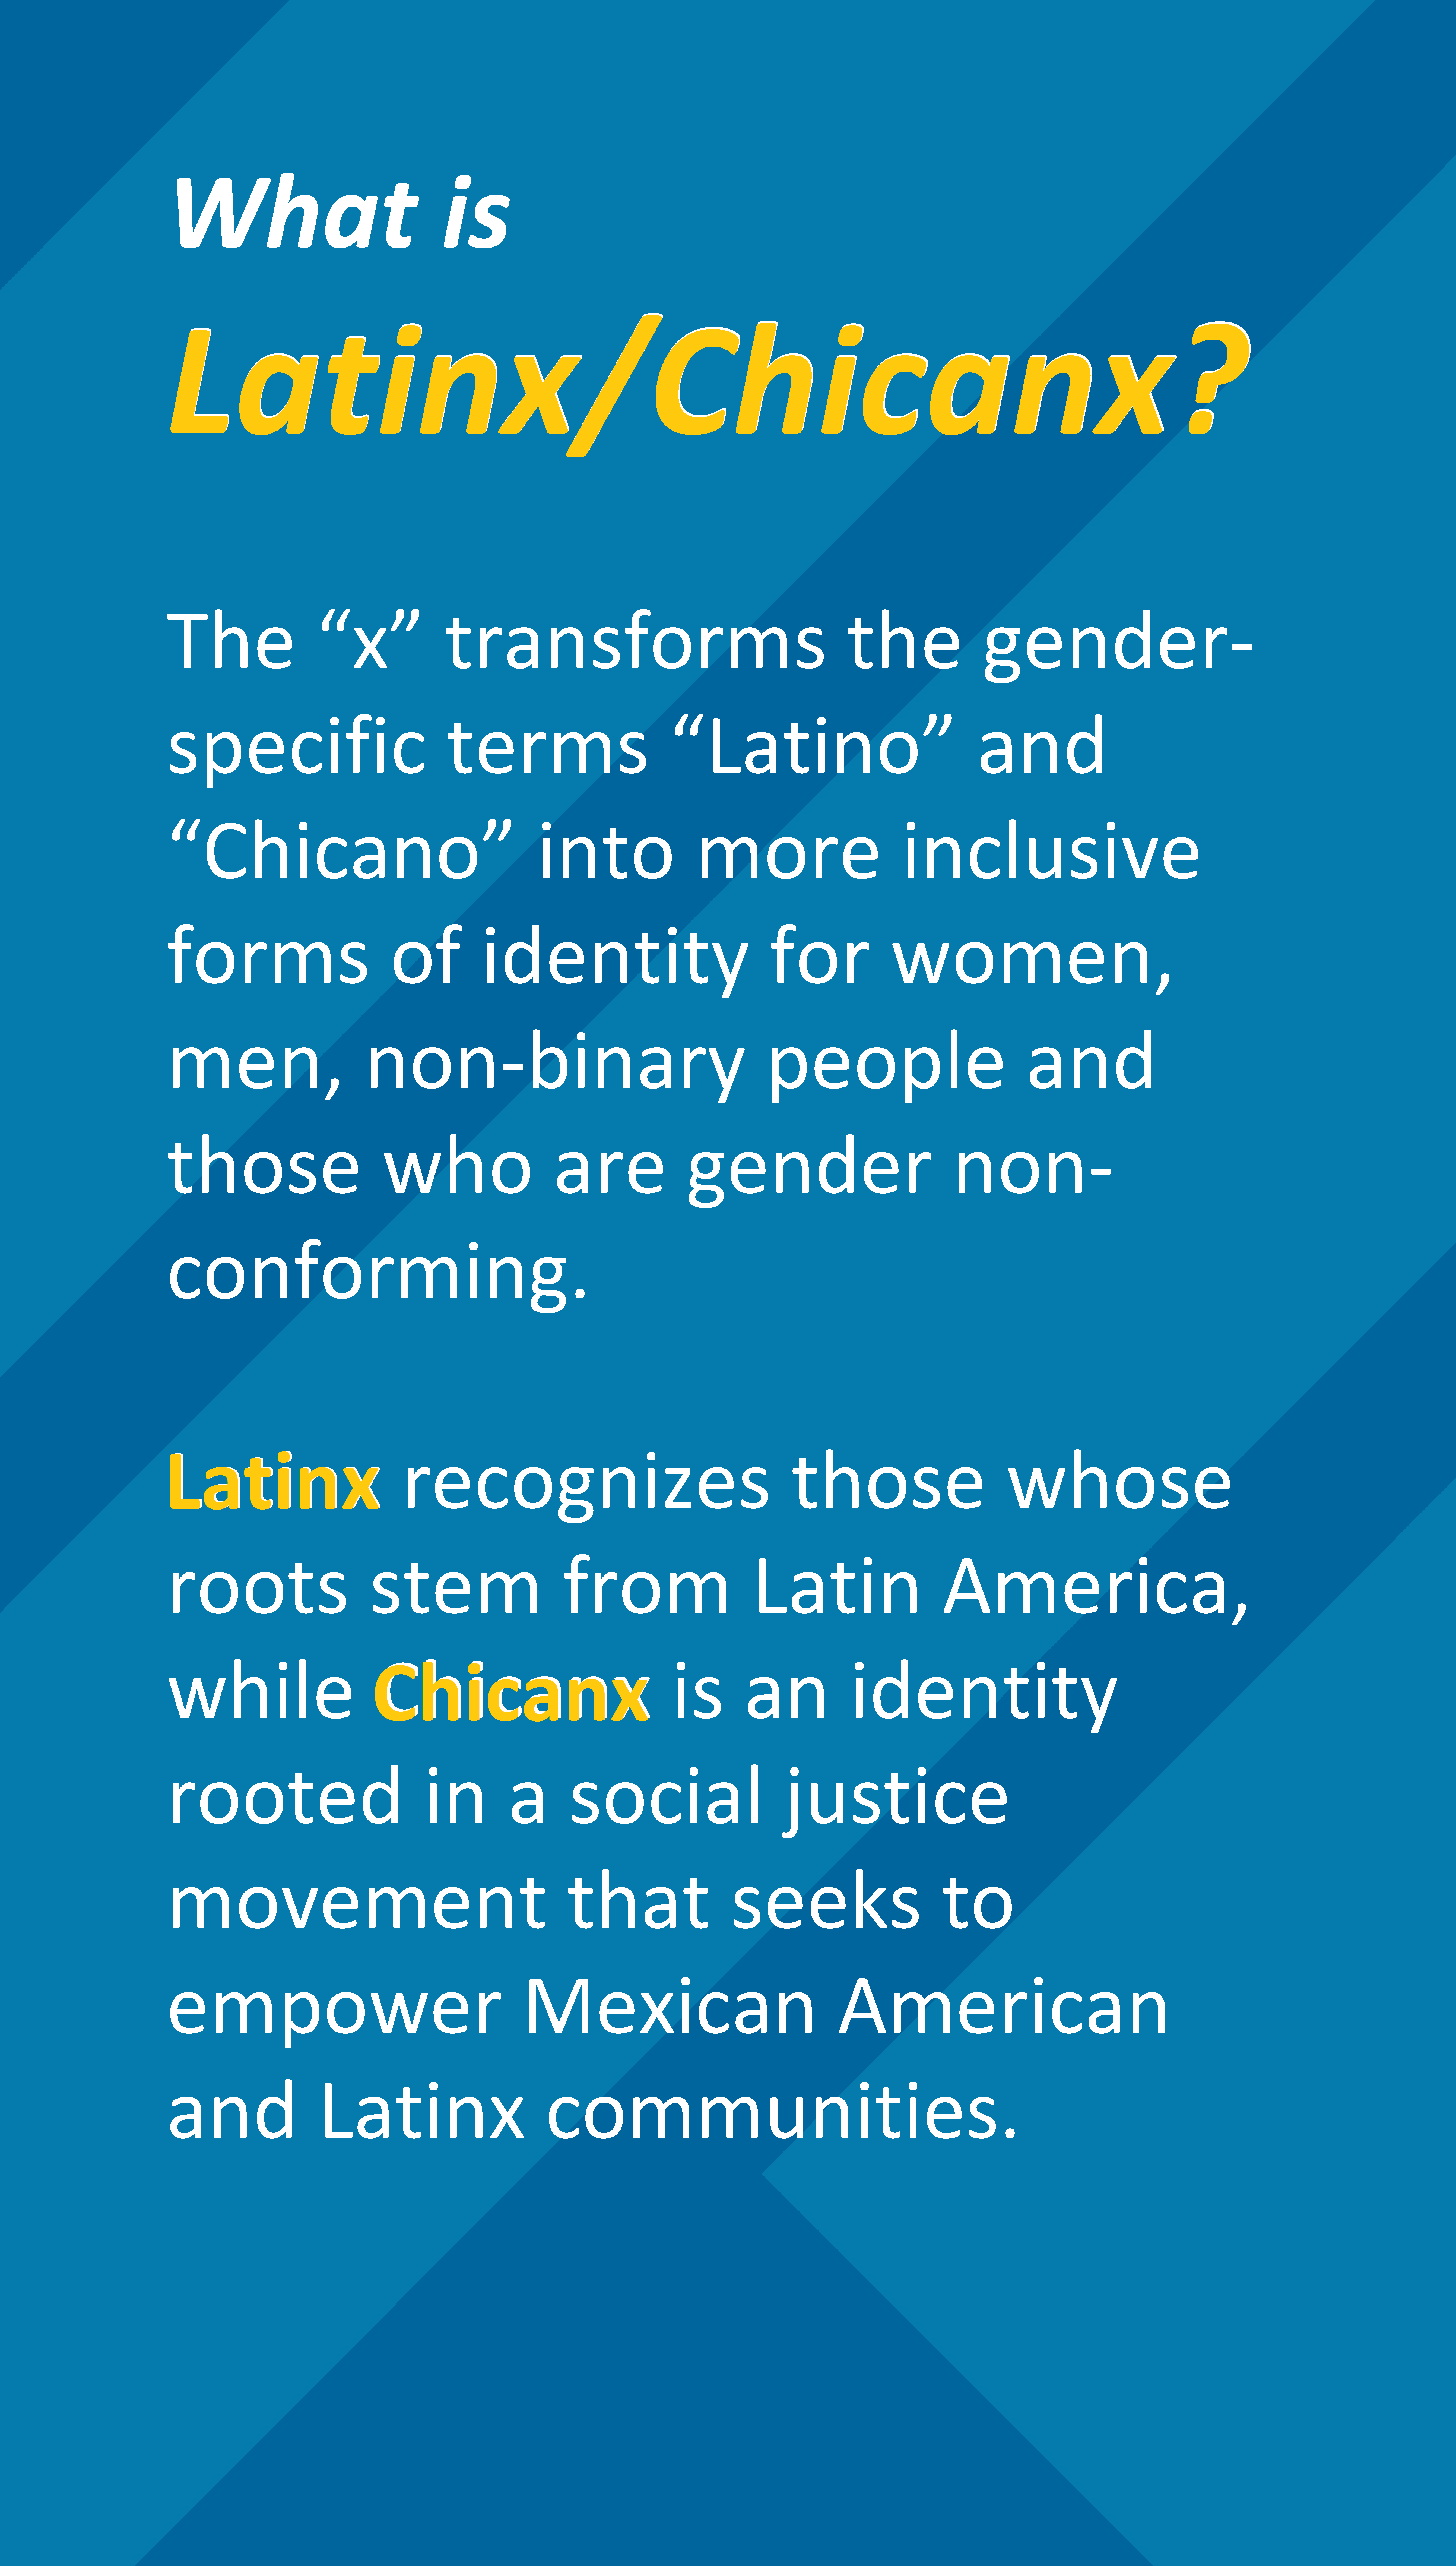 "What is  Latinx/Chicanx?  The ""x"" transforms the gender-specific terms ""Latino"" and ""Chicano"" into more inclusive forms of identity for women, men, non-binary people and those who are gender non-conforming.   Latinx recognizes those whose roots stem from Latin America, while Chicanx is an identity rooted in a social justice movement that seeks to empower Mexican American and Latinx communities."